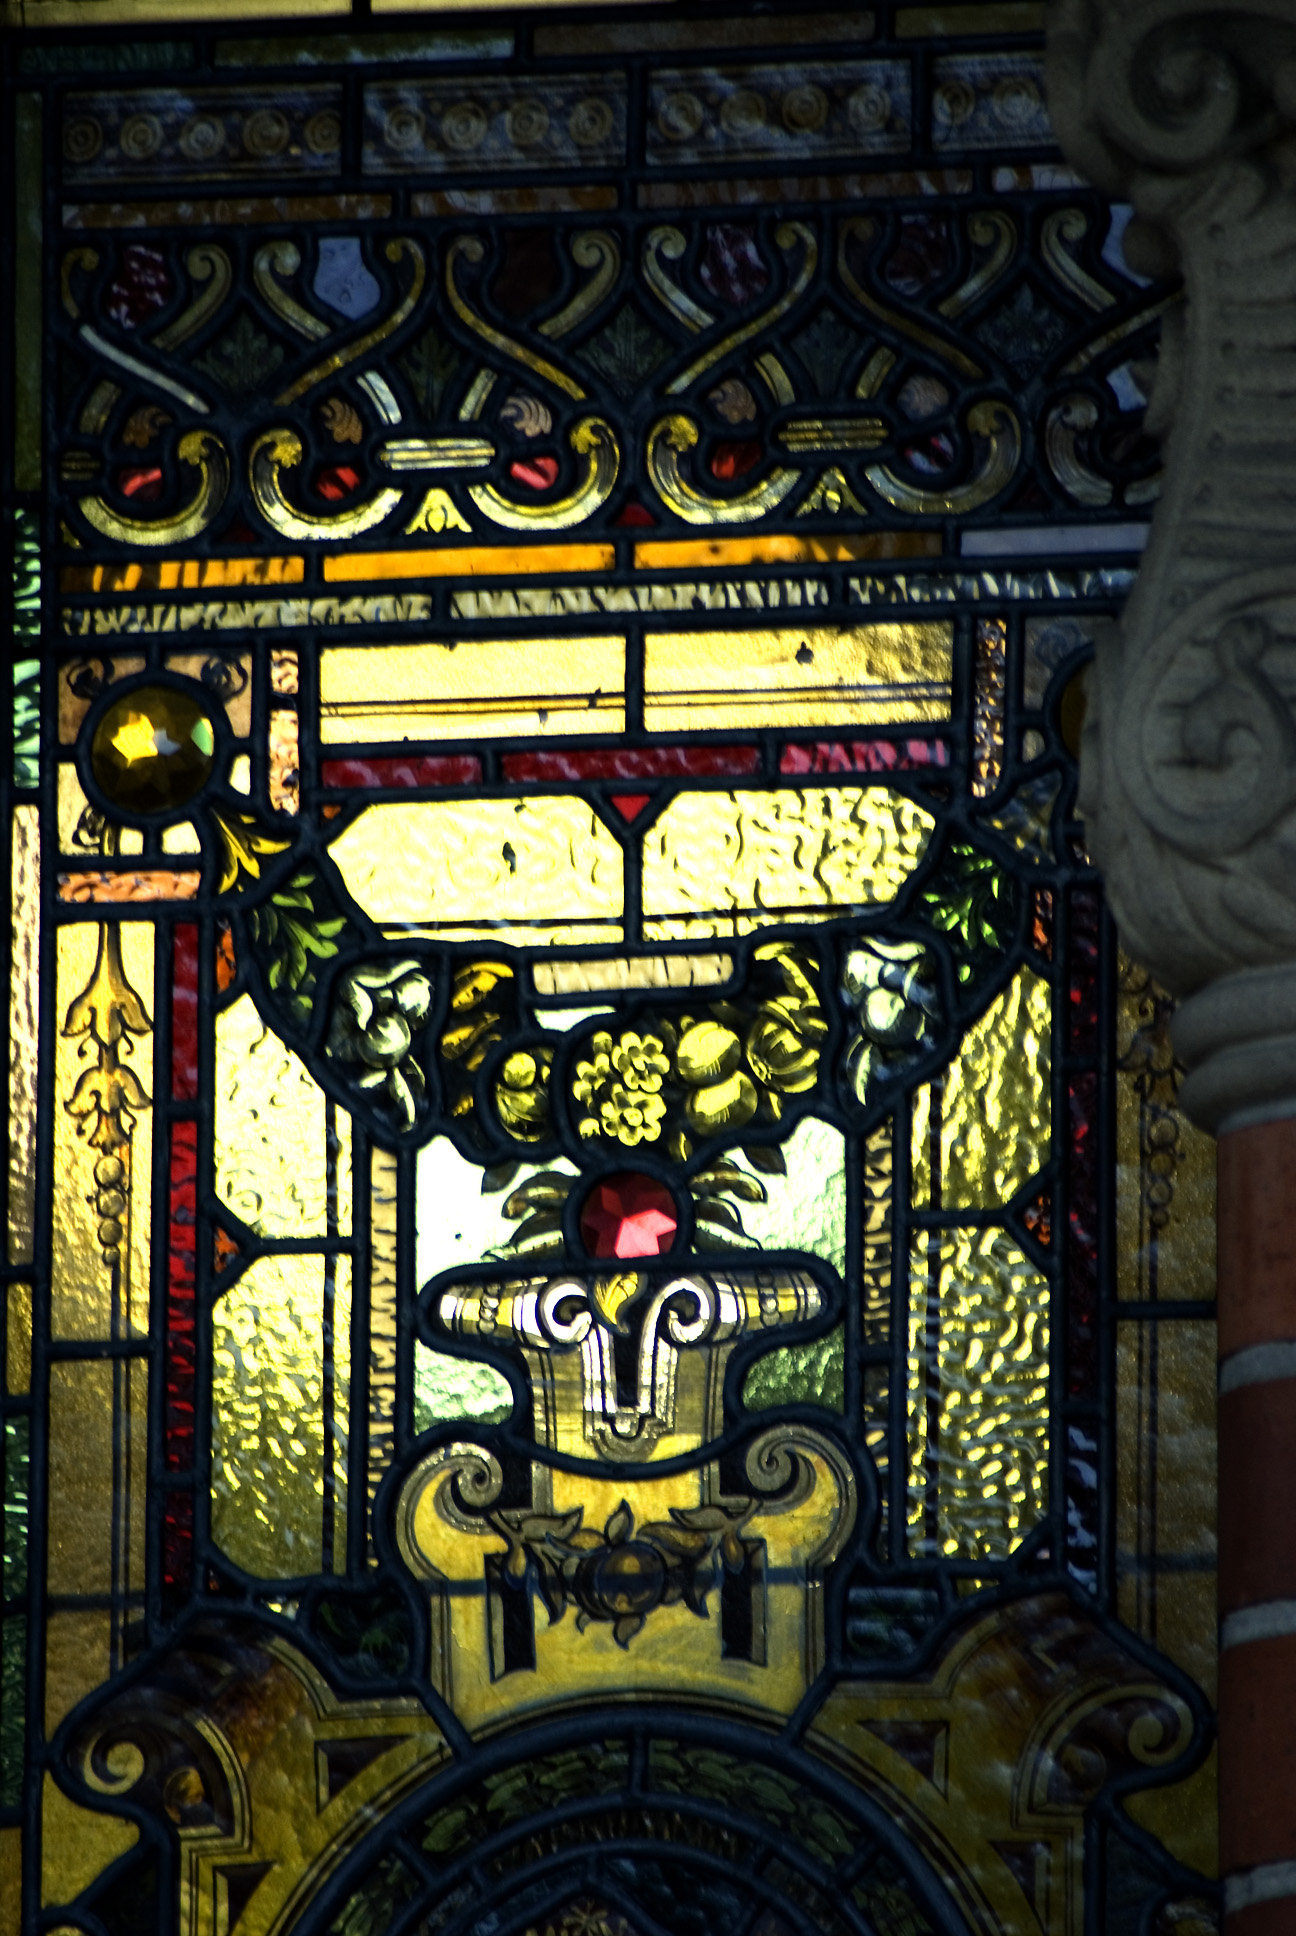 ornate stained glass window